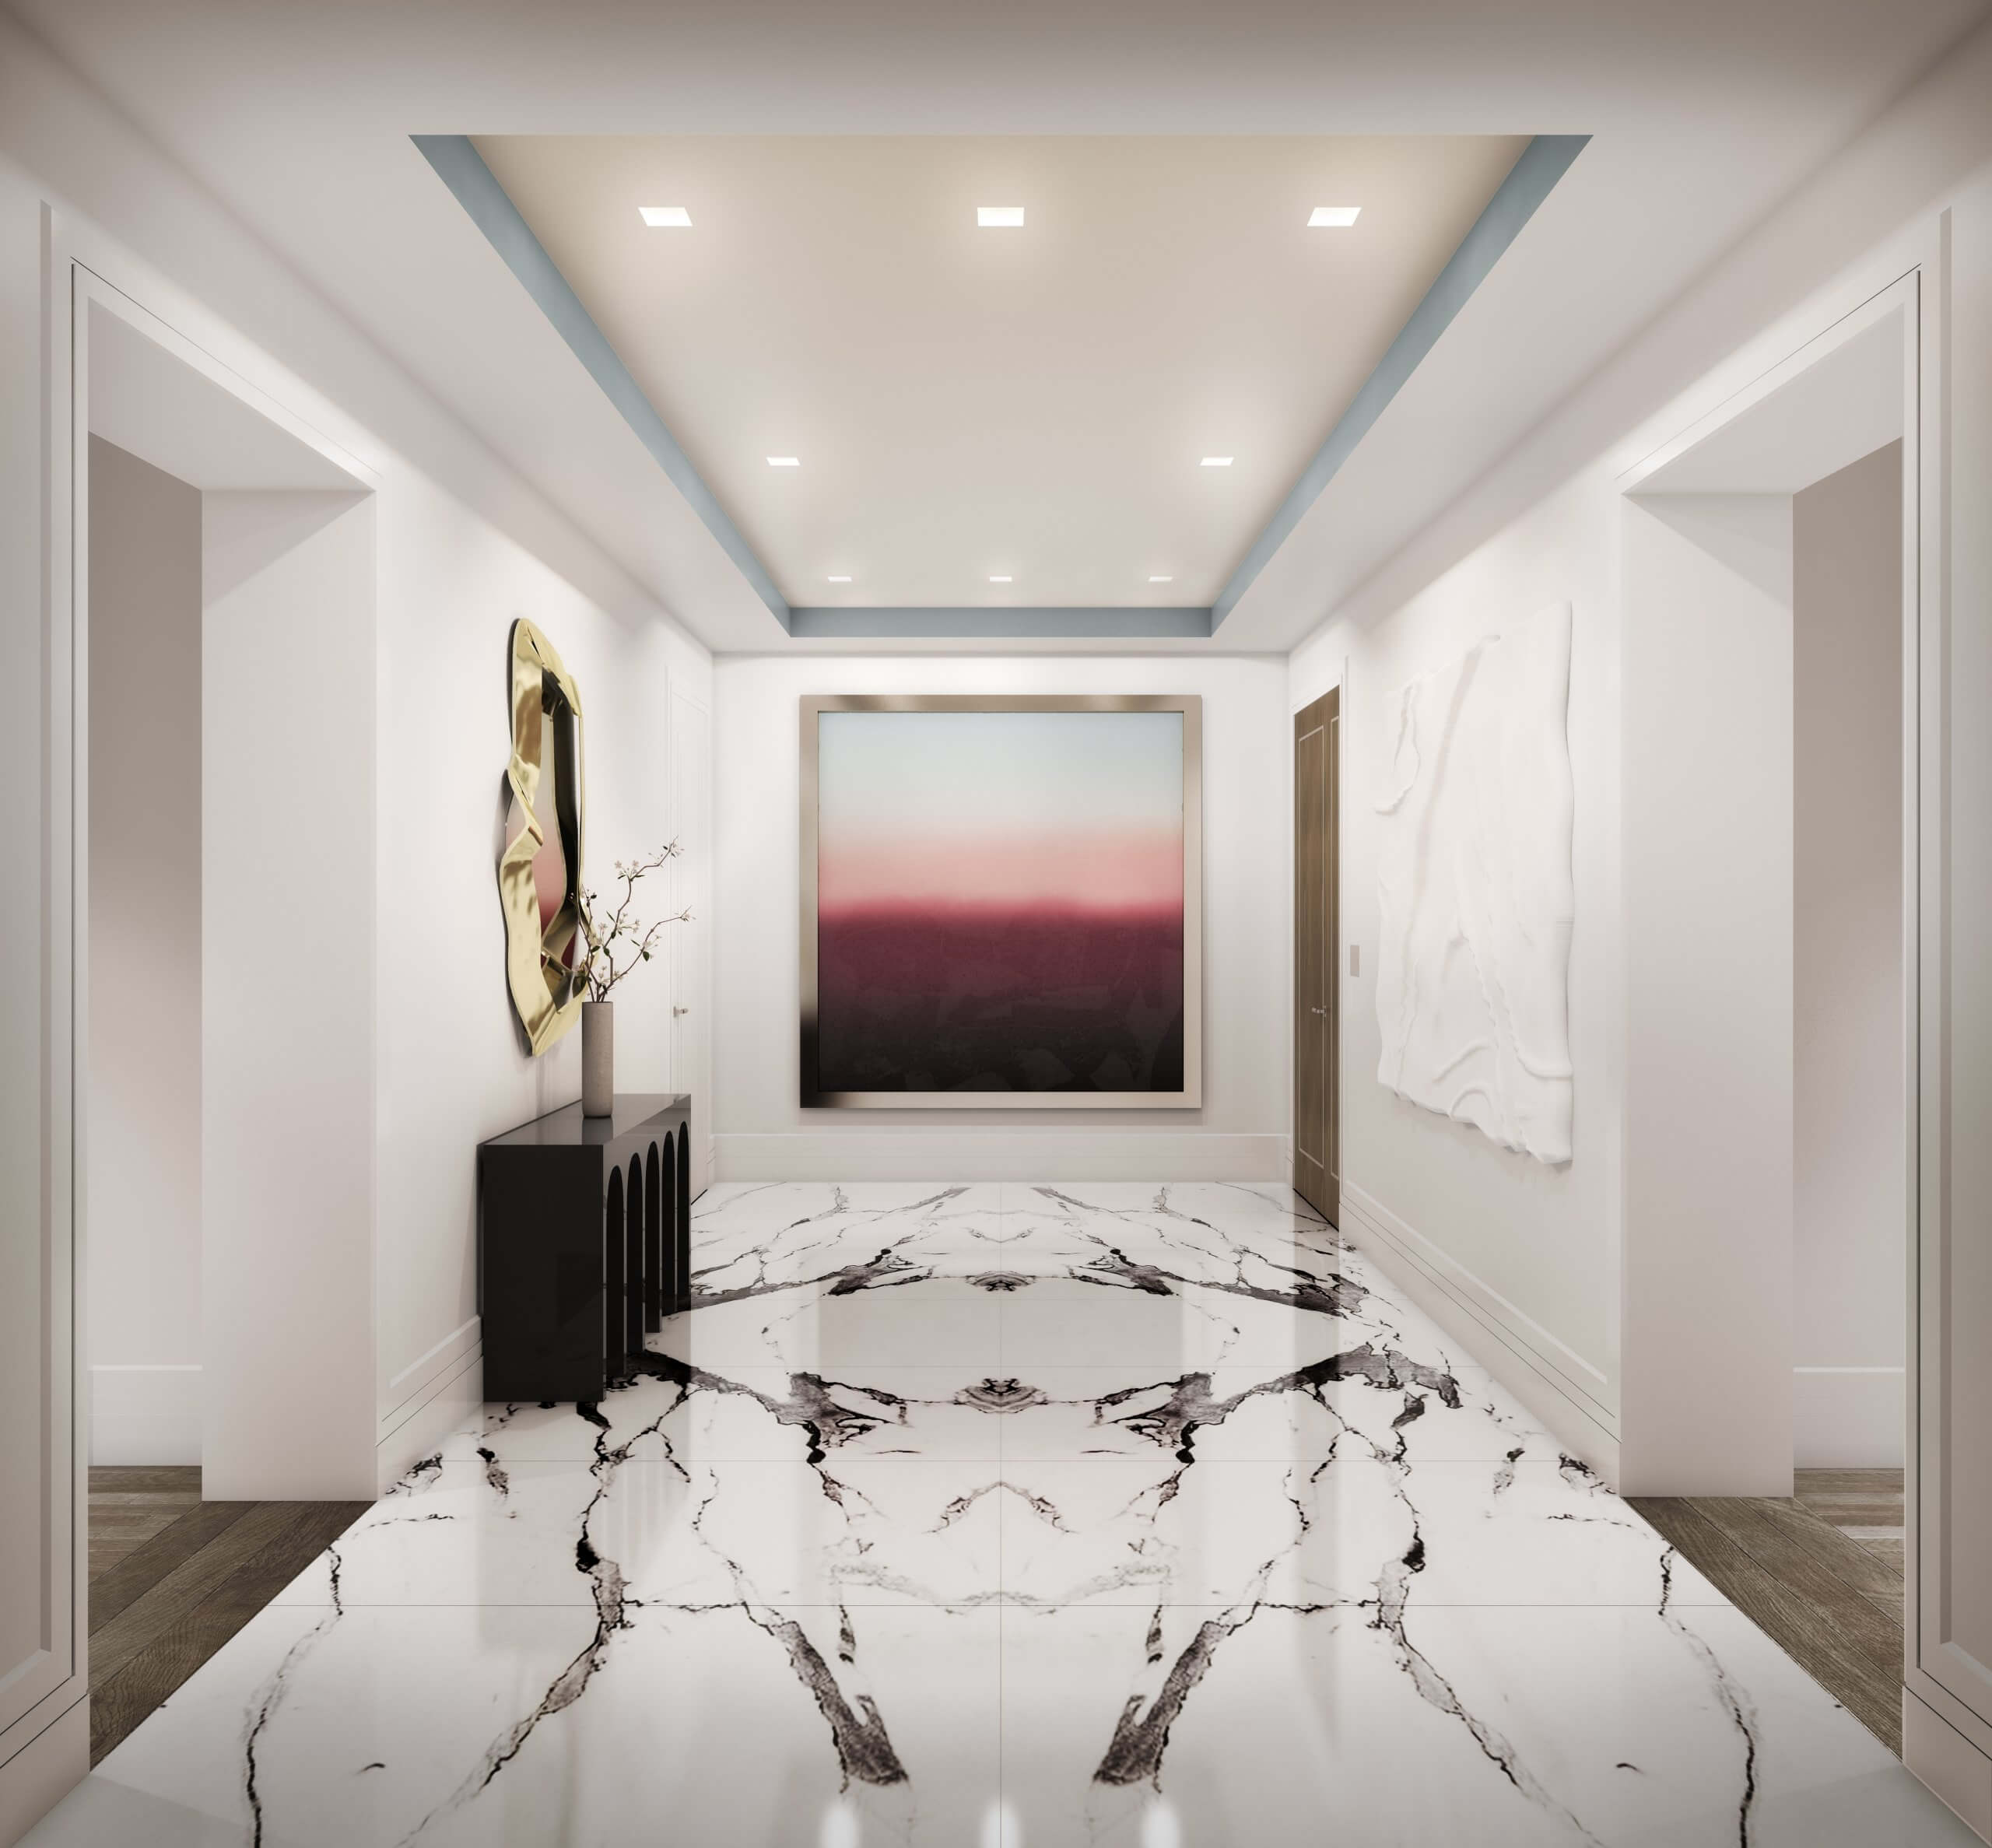 MM001-01-C12-R04-Foyer